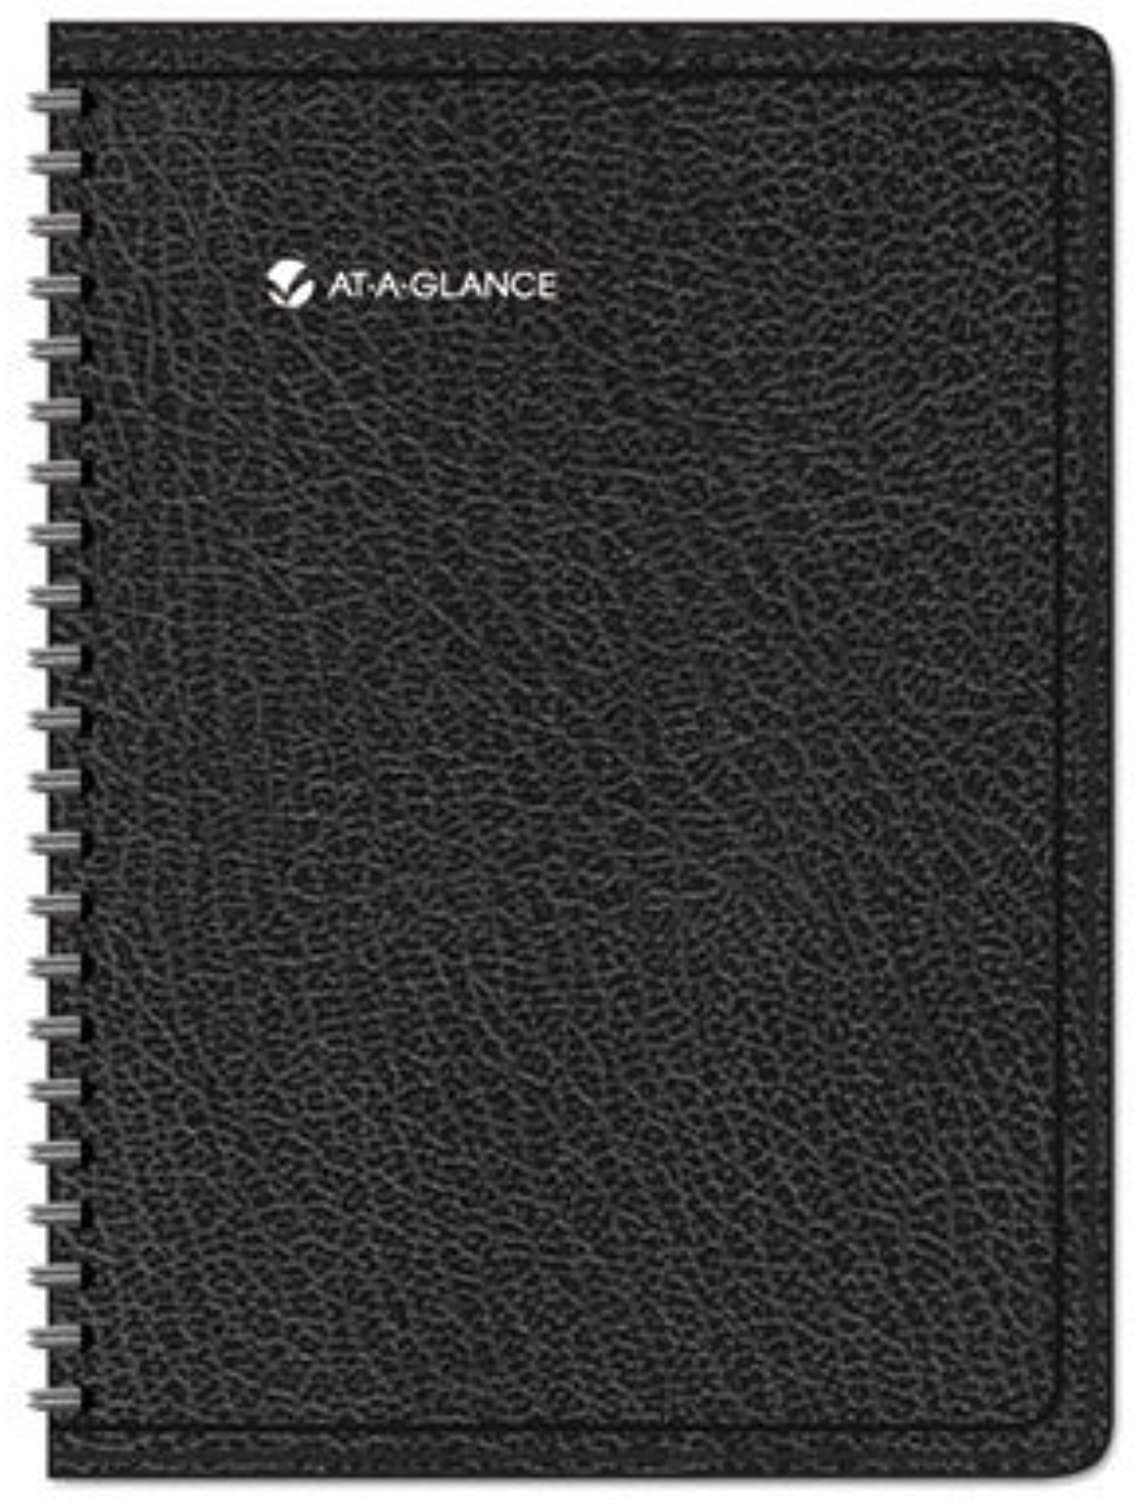 AT-A-GLANCE QuickNotes Recycled Weekly Monthly Appointment Book, 8 8 8 x 10 Inches, schwarz, 2012 (76-05-05) by At-A-Glance B01AVVH2FS | Discount  64f3a3